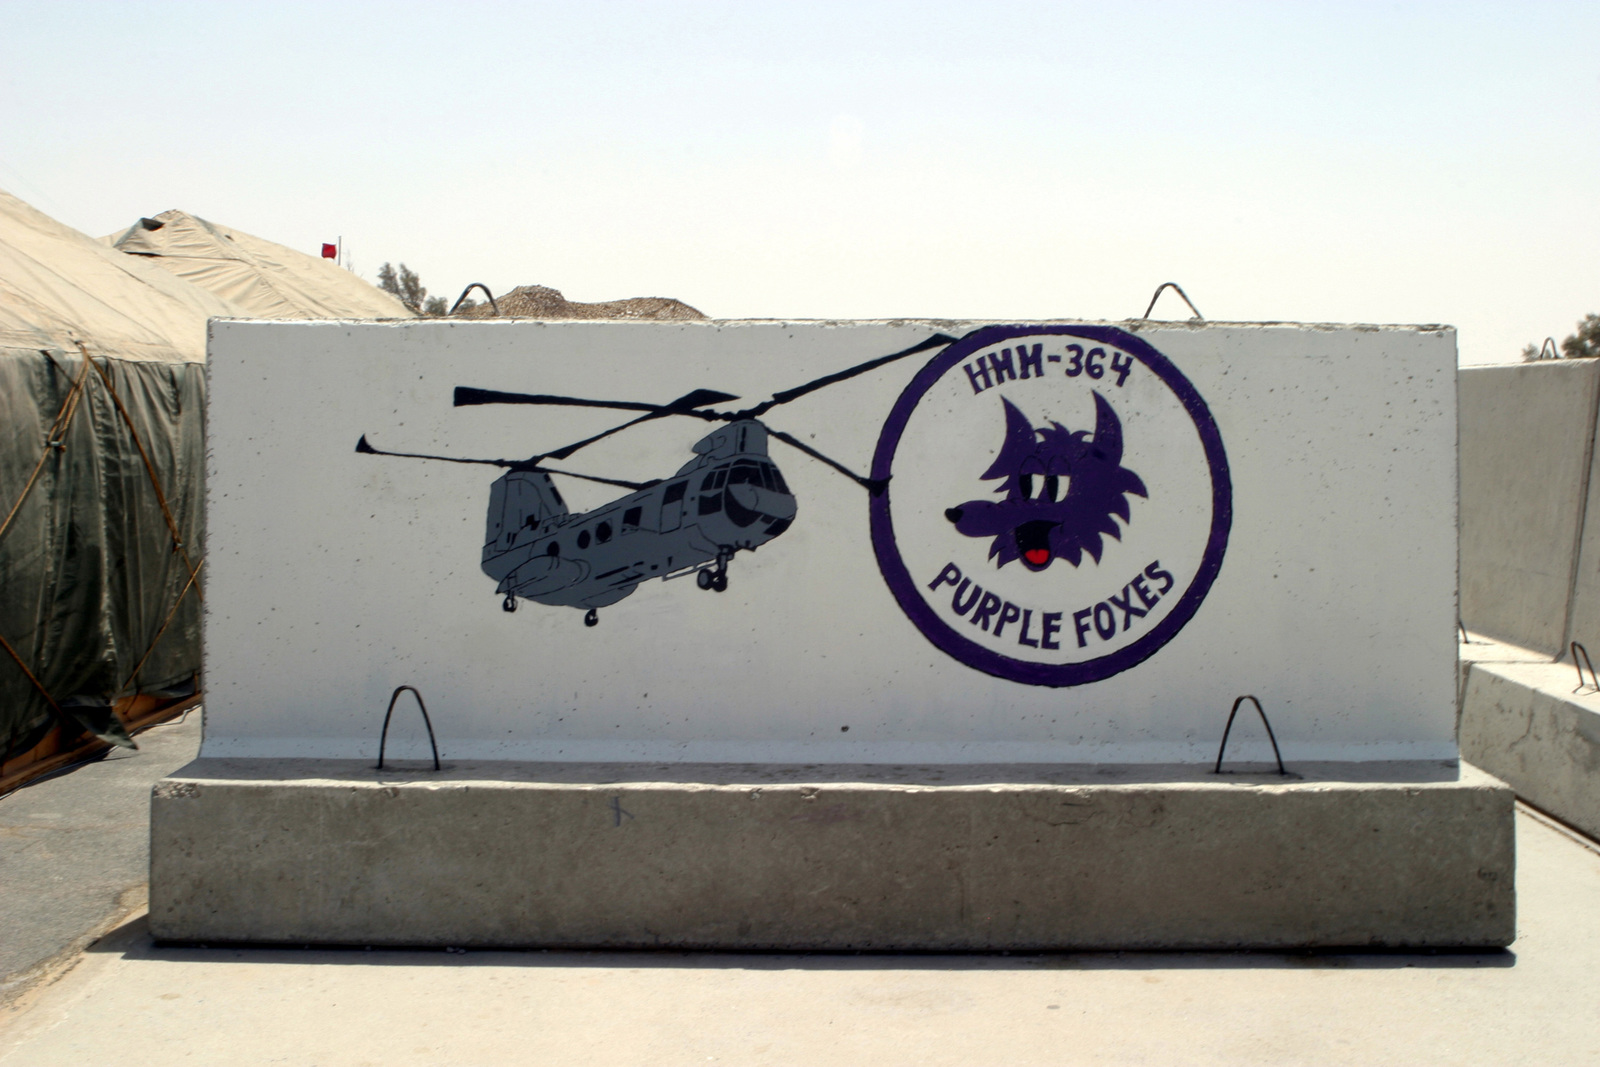 US Marine Corps (USMC) Marines from Marine Medium Helicopter Squadron-364 (HMM-364), Marine Air Group-39 (MAG-39), painted a mural on a road barricade at Ali Al Salem Air Base (AB), Kuwait. US Marines deployed to Southwest Asia in support of Operations ENDURING FREEDOM and IRAQI FREEDOM